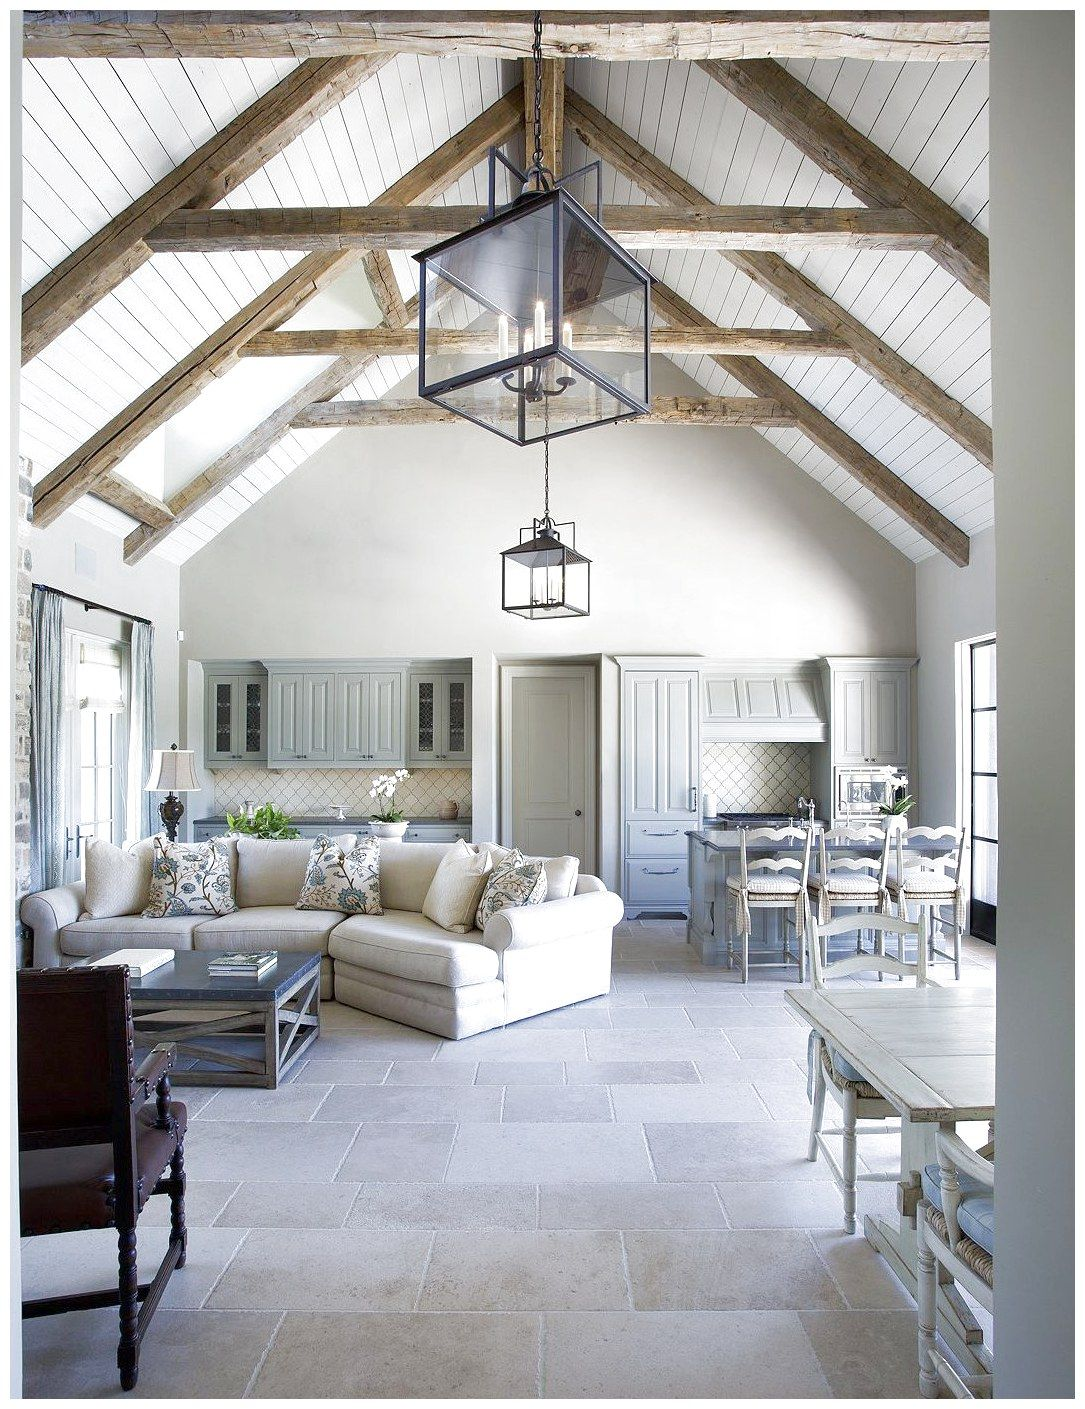 Cathedral ceilings with exposed beams. White washed, bright interior ...